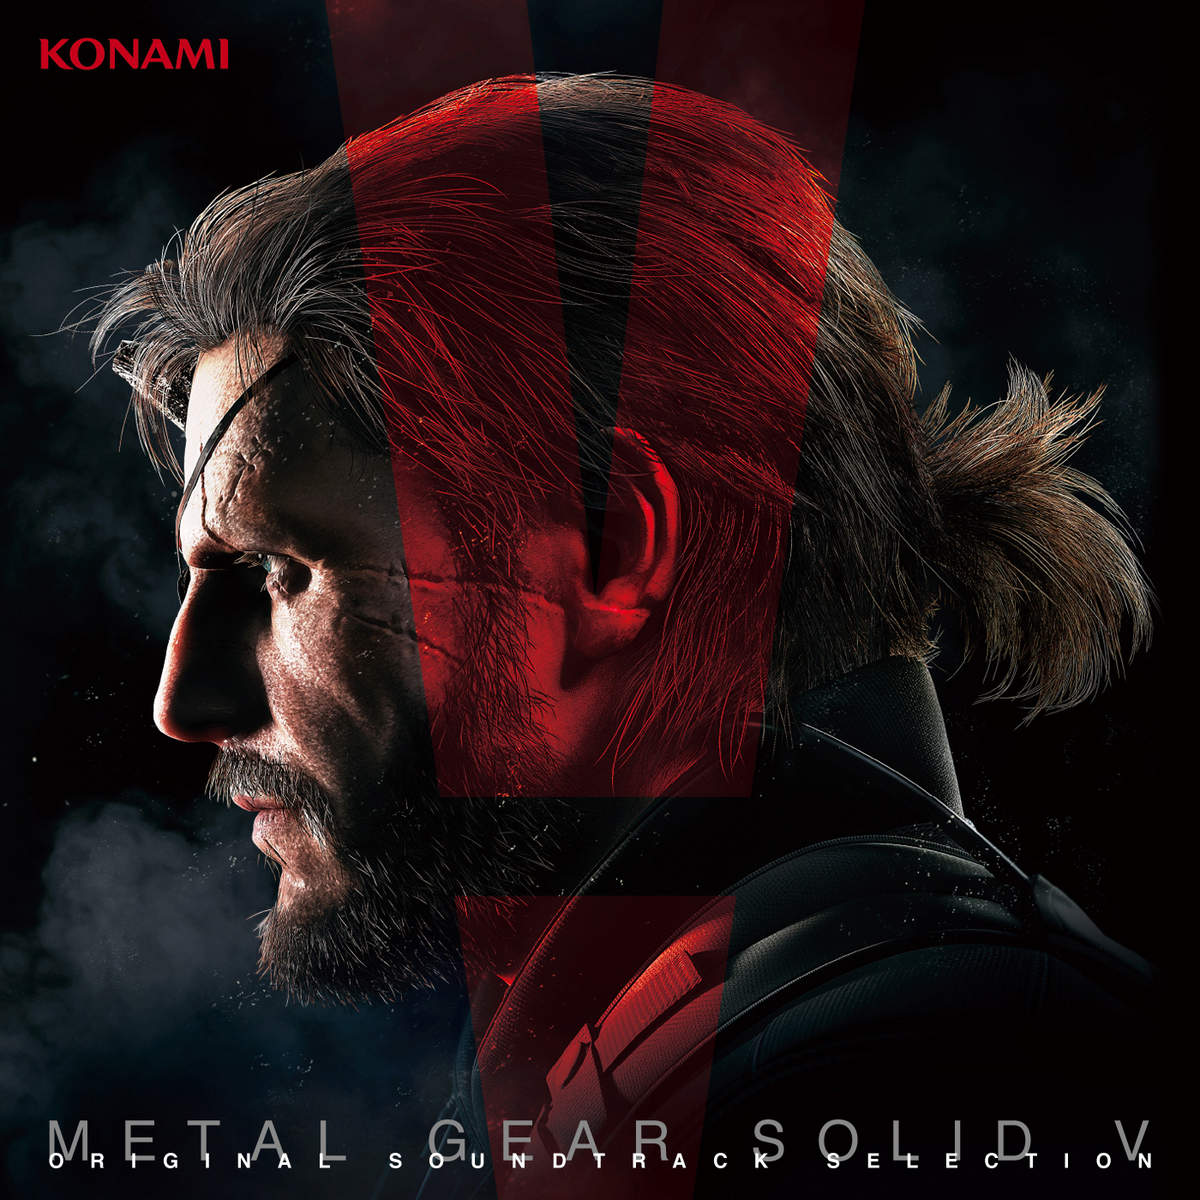 Metal_Gear_Solid_5_Original_Soundtrack__cover1200x1200.jpg